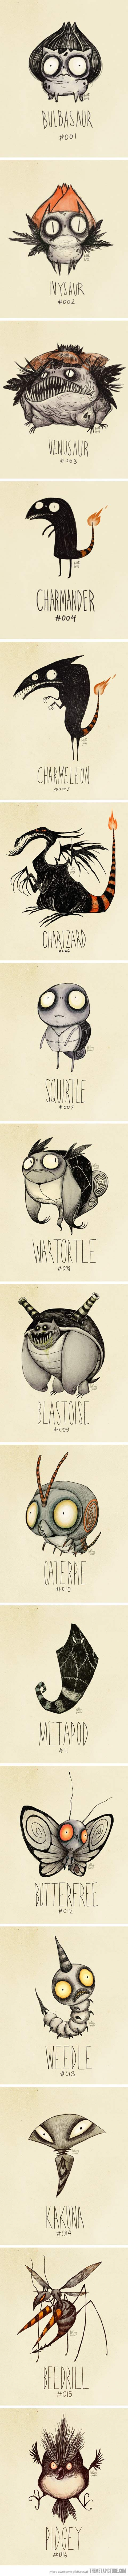 Pokemon as Drawn by Tim Burton…